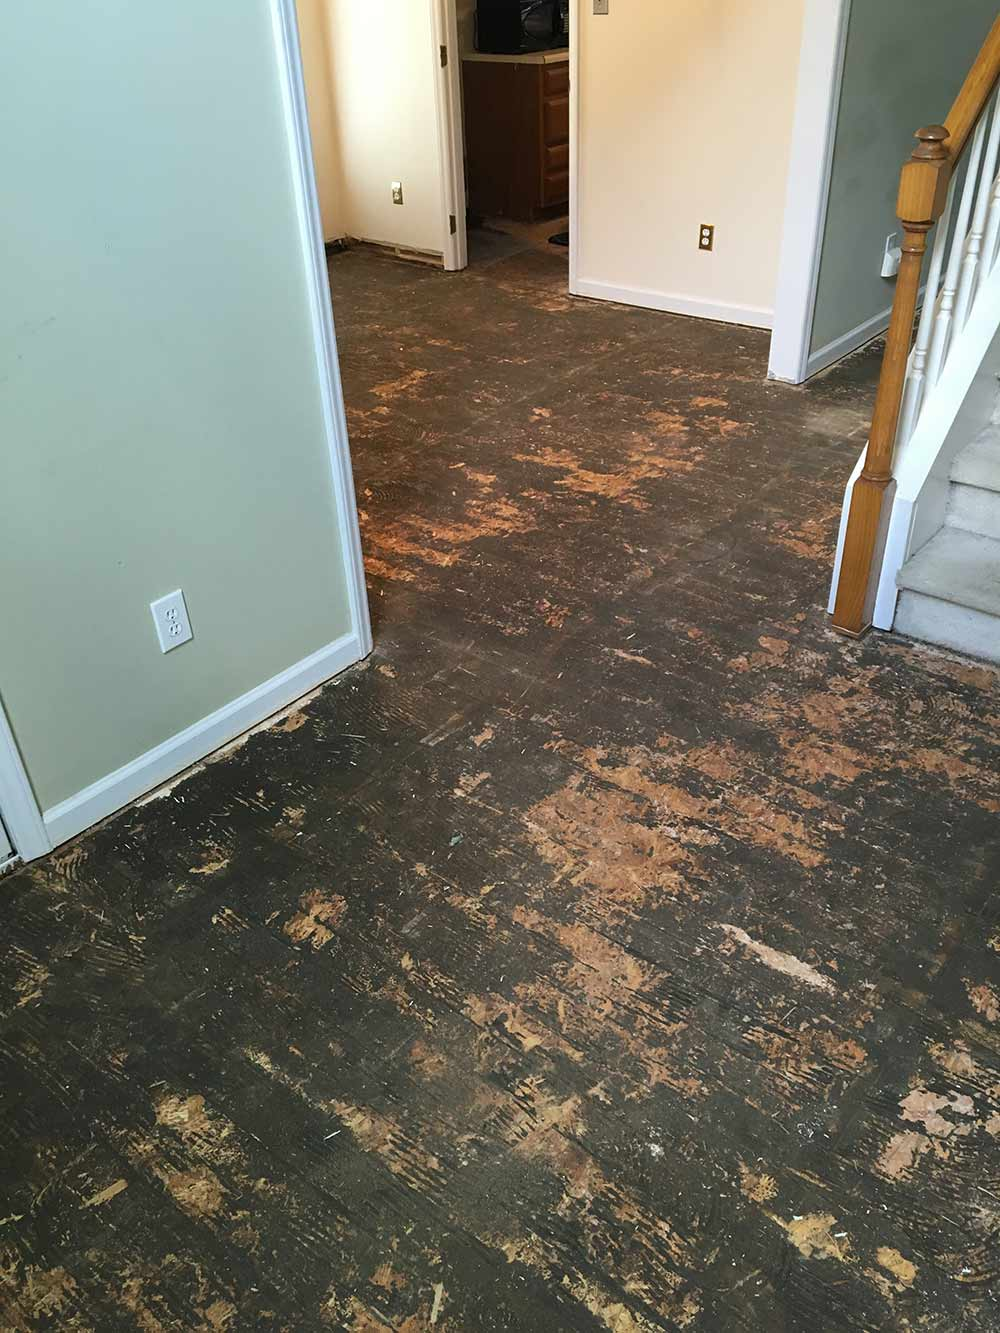 Leaking Pipe Water Damage Restoration in North Raleigh, NC 2